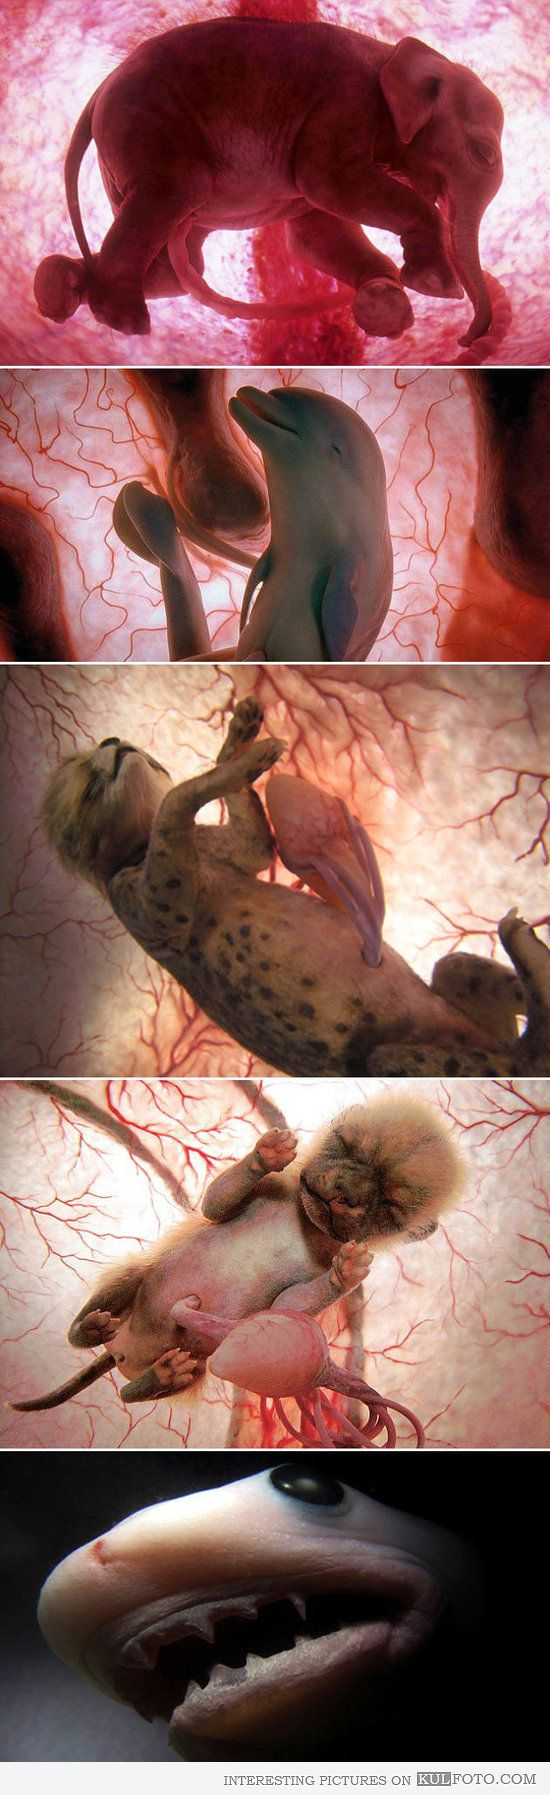 Best WOMB Images On Pinterest Maze Celebrities And Child - 14 incredible photos animals inside womb